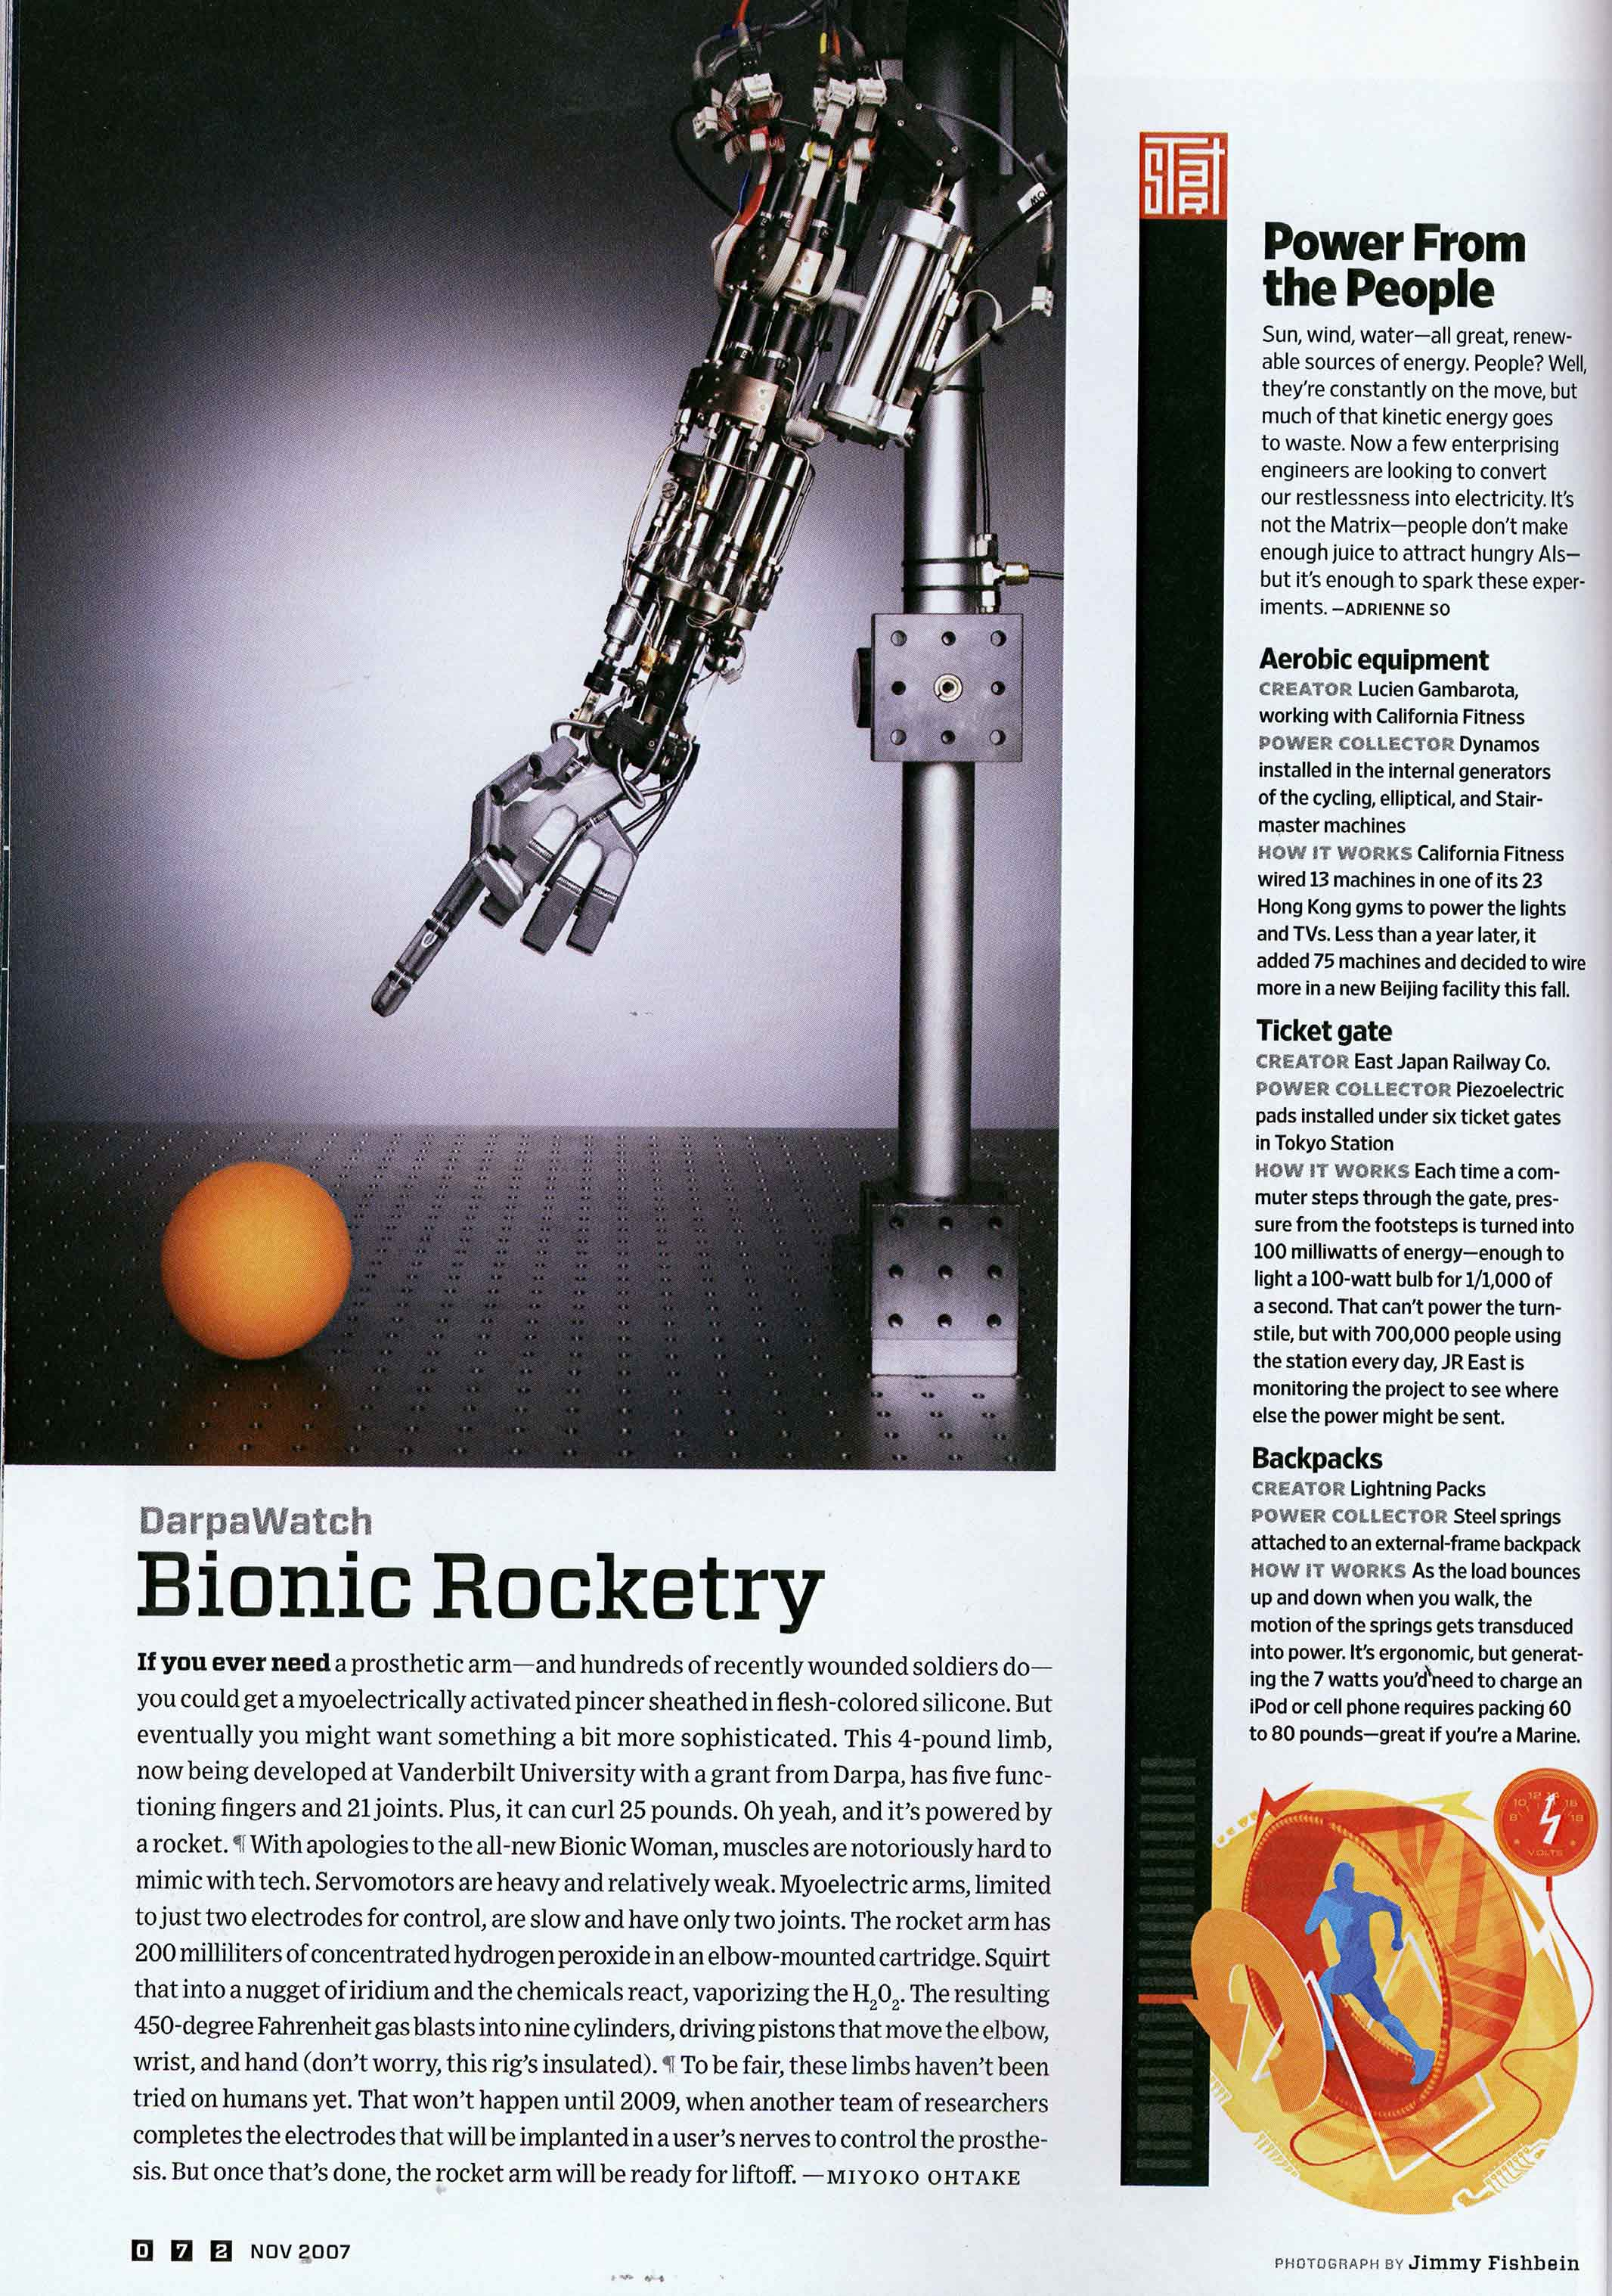 wired_robotic arm.jpg